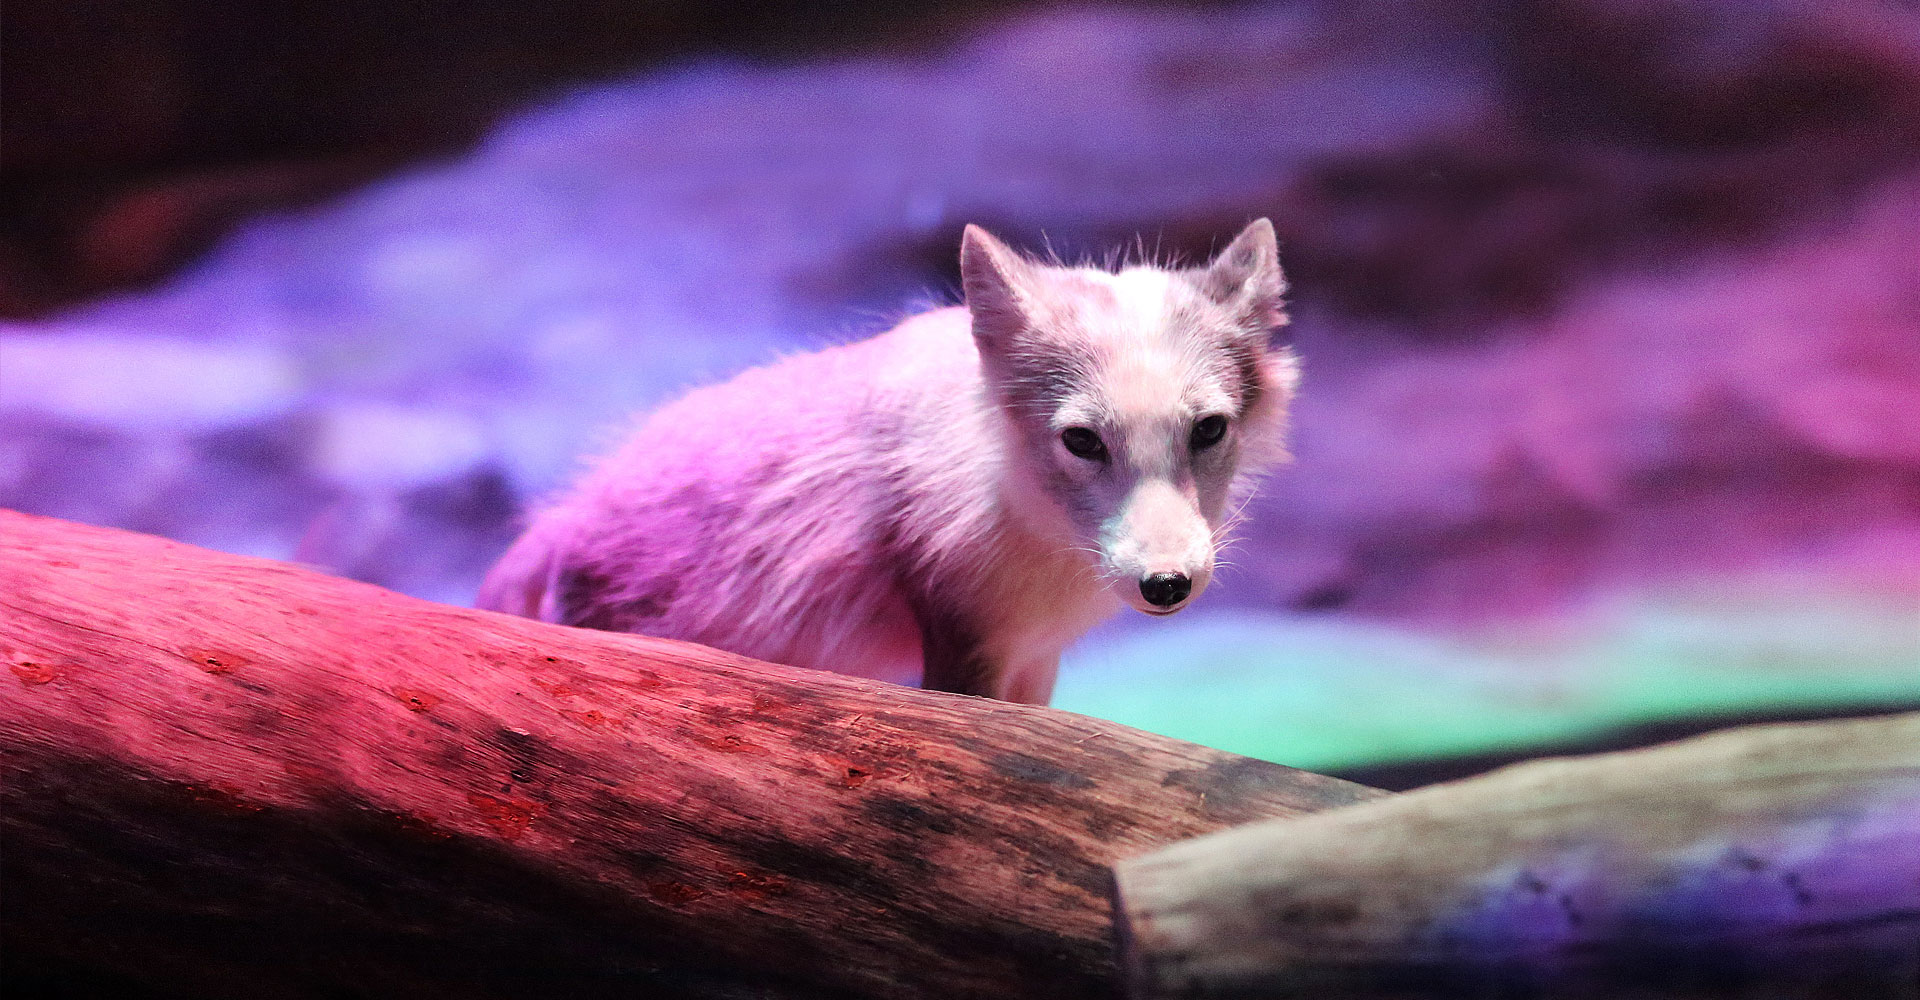 https://media.oceanpark.com.hk/files/s3fs-public/arctic_fox_den_bg01.jpg